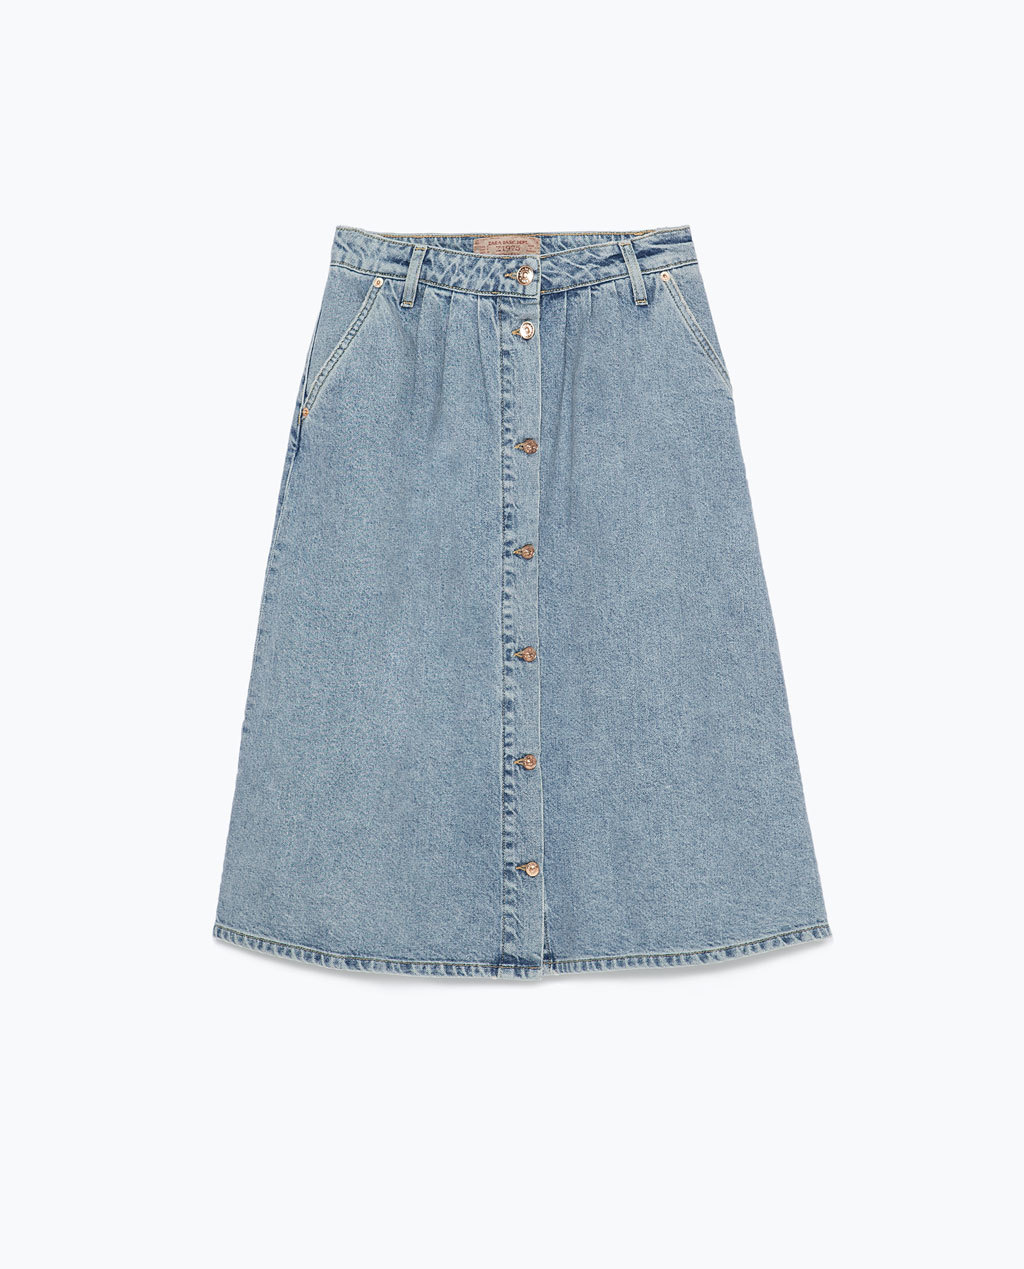 Long Denim Skirt - length: below the knee; pattern: plain; fit: loose/voluminous; waist: high rise; predominant colour: denim; occasions: casual, creative work; style: a-line; texture group: denim; pattern type: fabric; trends: alternative denim, seventies retro; season: s/s 2015; wardrobe: basic